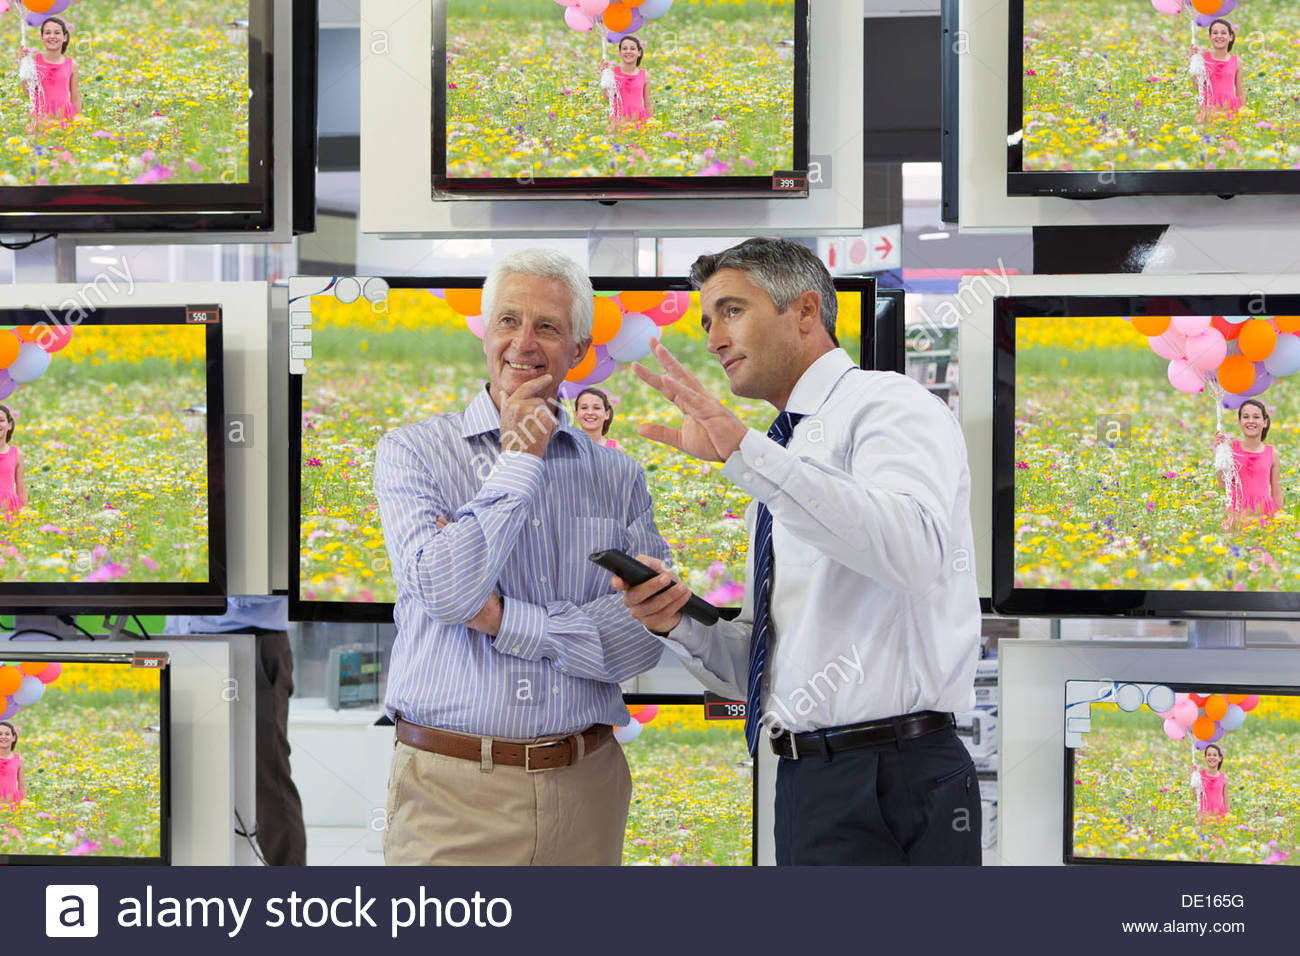 Flat screen televisions behind salesman and senior man in electronics store - Stock Image